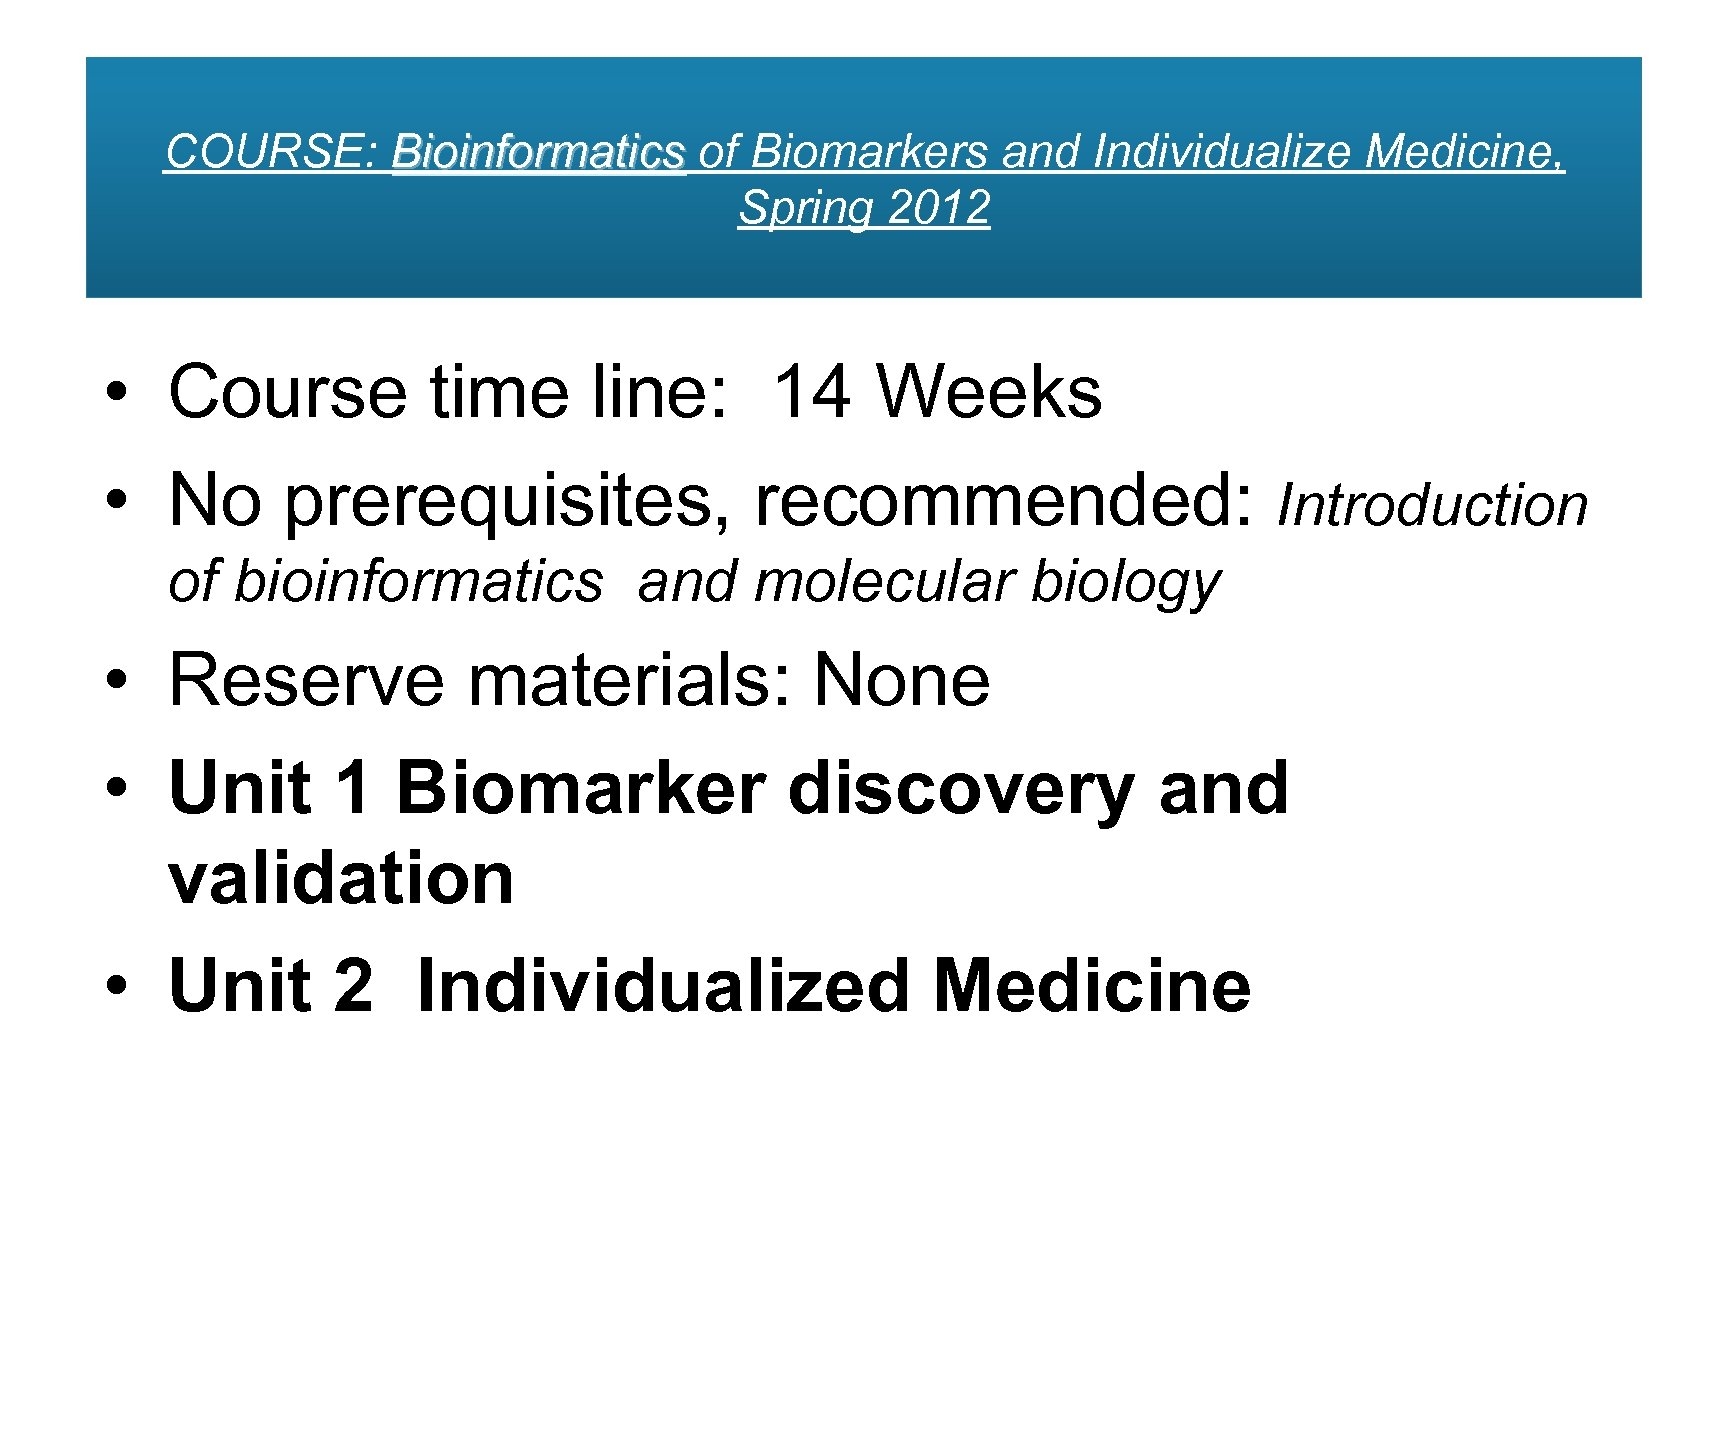 COURSE: Bioinformatics of Biomarkers and Individualize Medicine, Spring 2012 • Course time line: 14